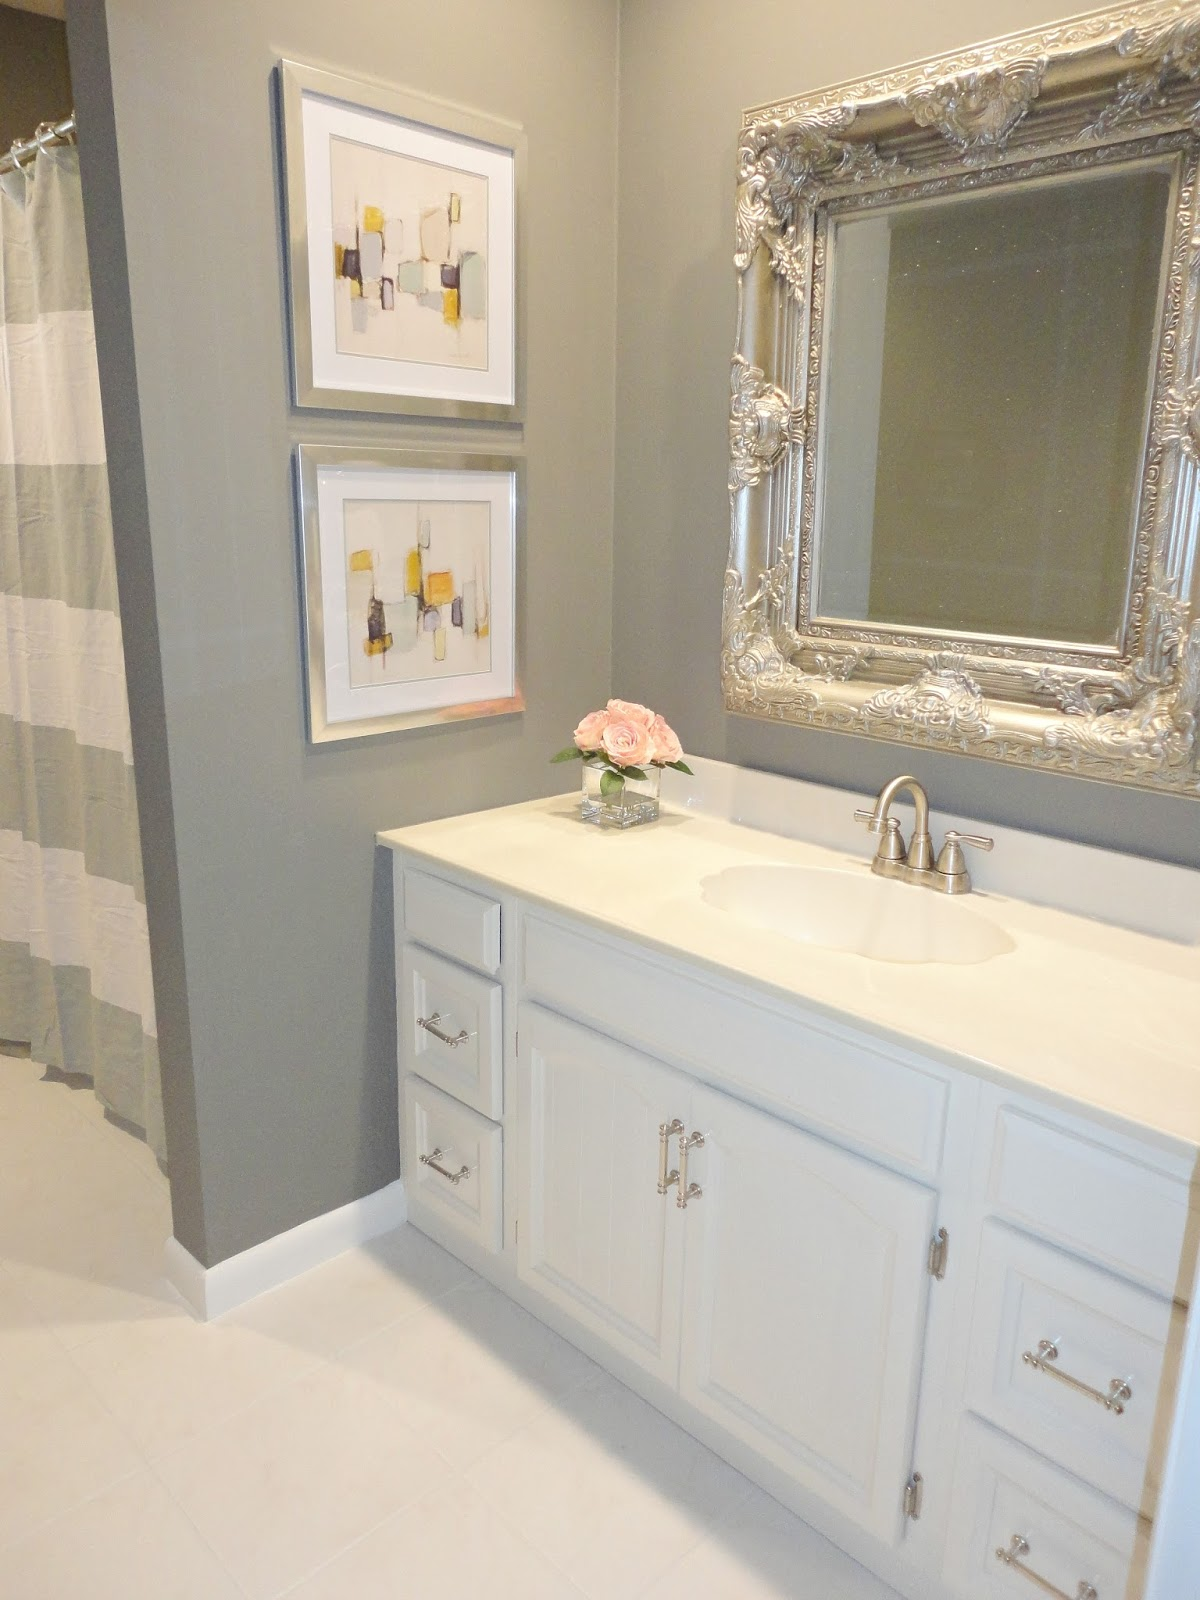 Livelovediy diy bathroom remodel on a budget for Redo bathtub